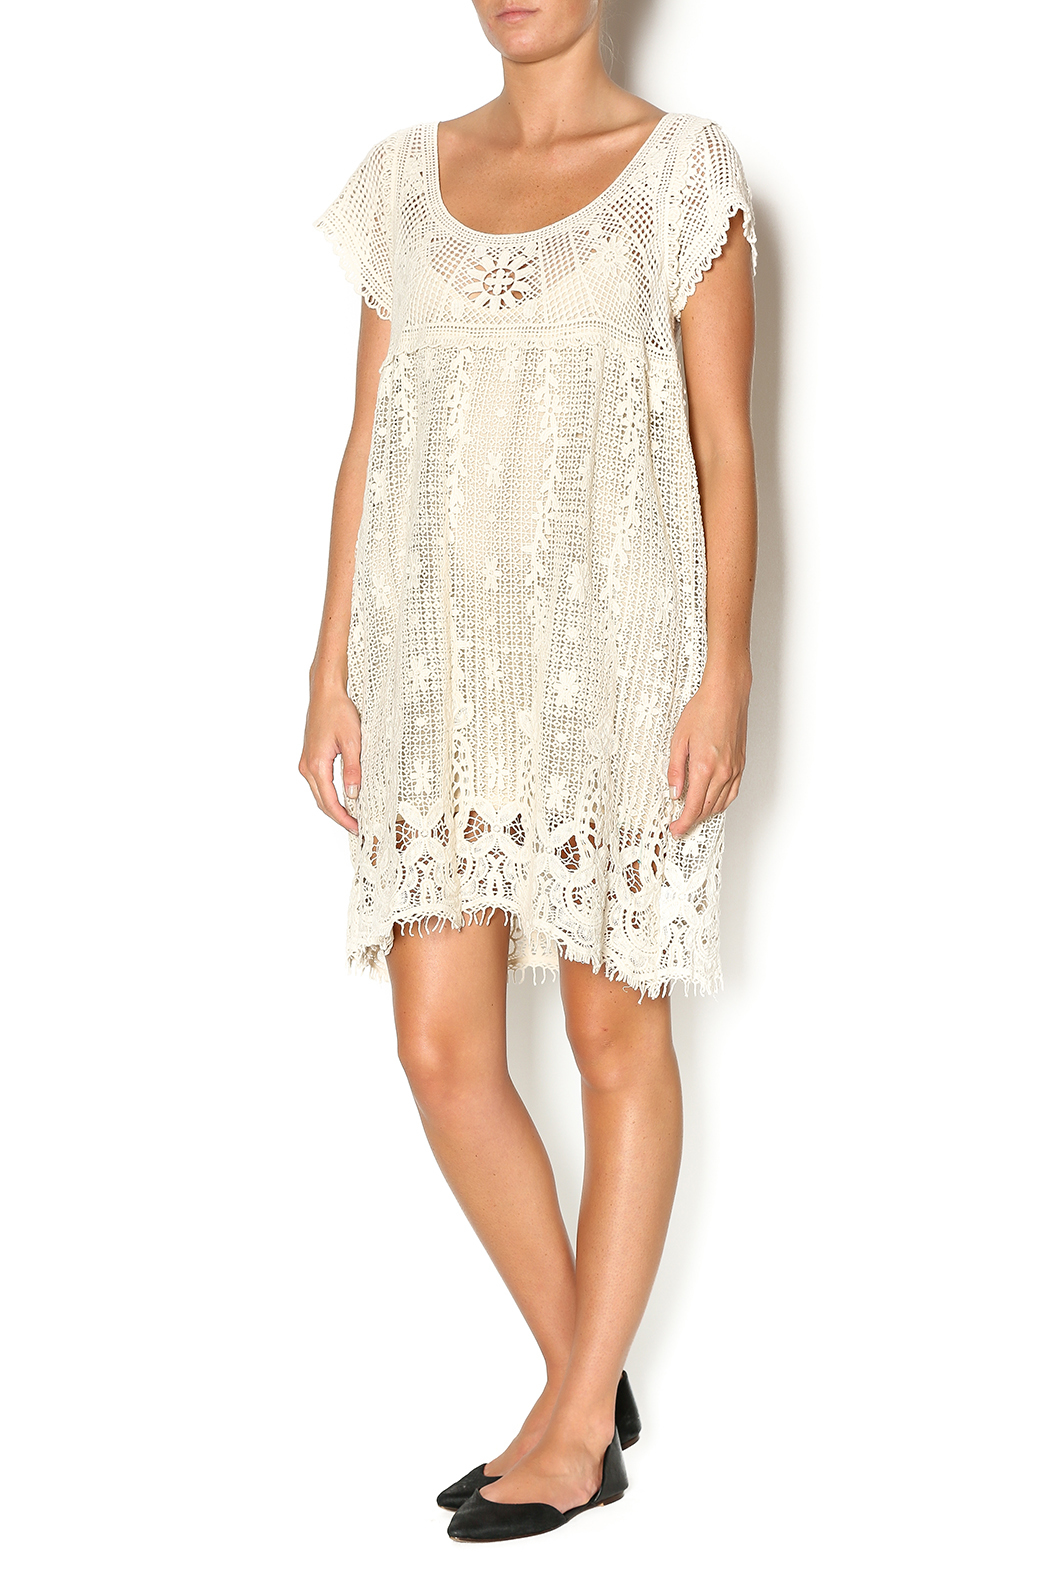 Entro Baby Doll Crochet Dress from Montana by The Banyan